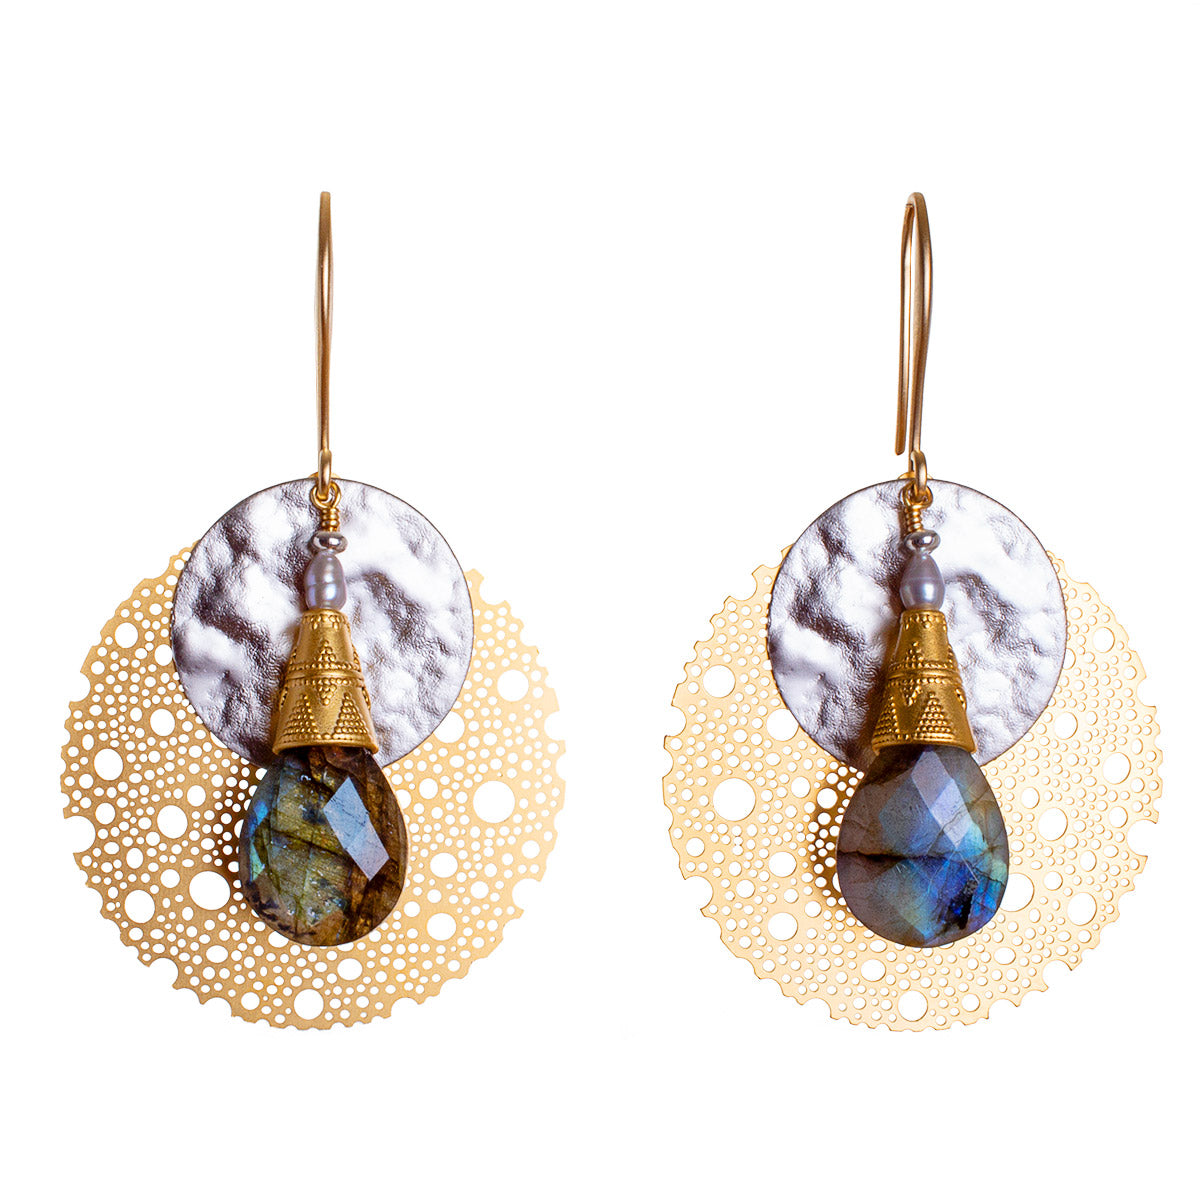 N°670 The Elegant Republic of Labradorite Thieves Statement Earrings